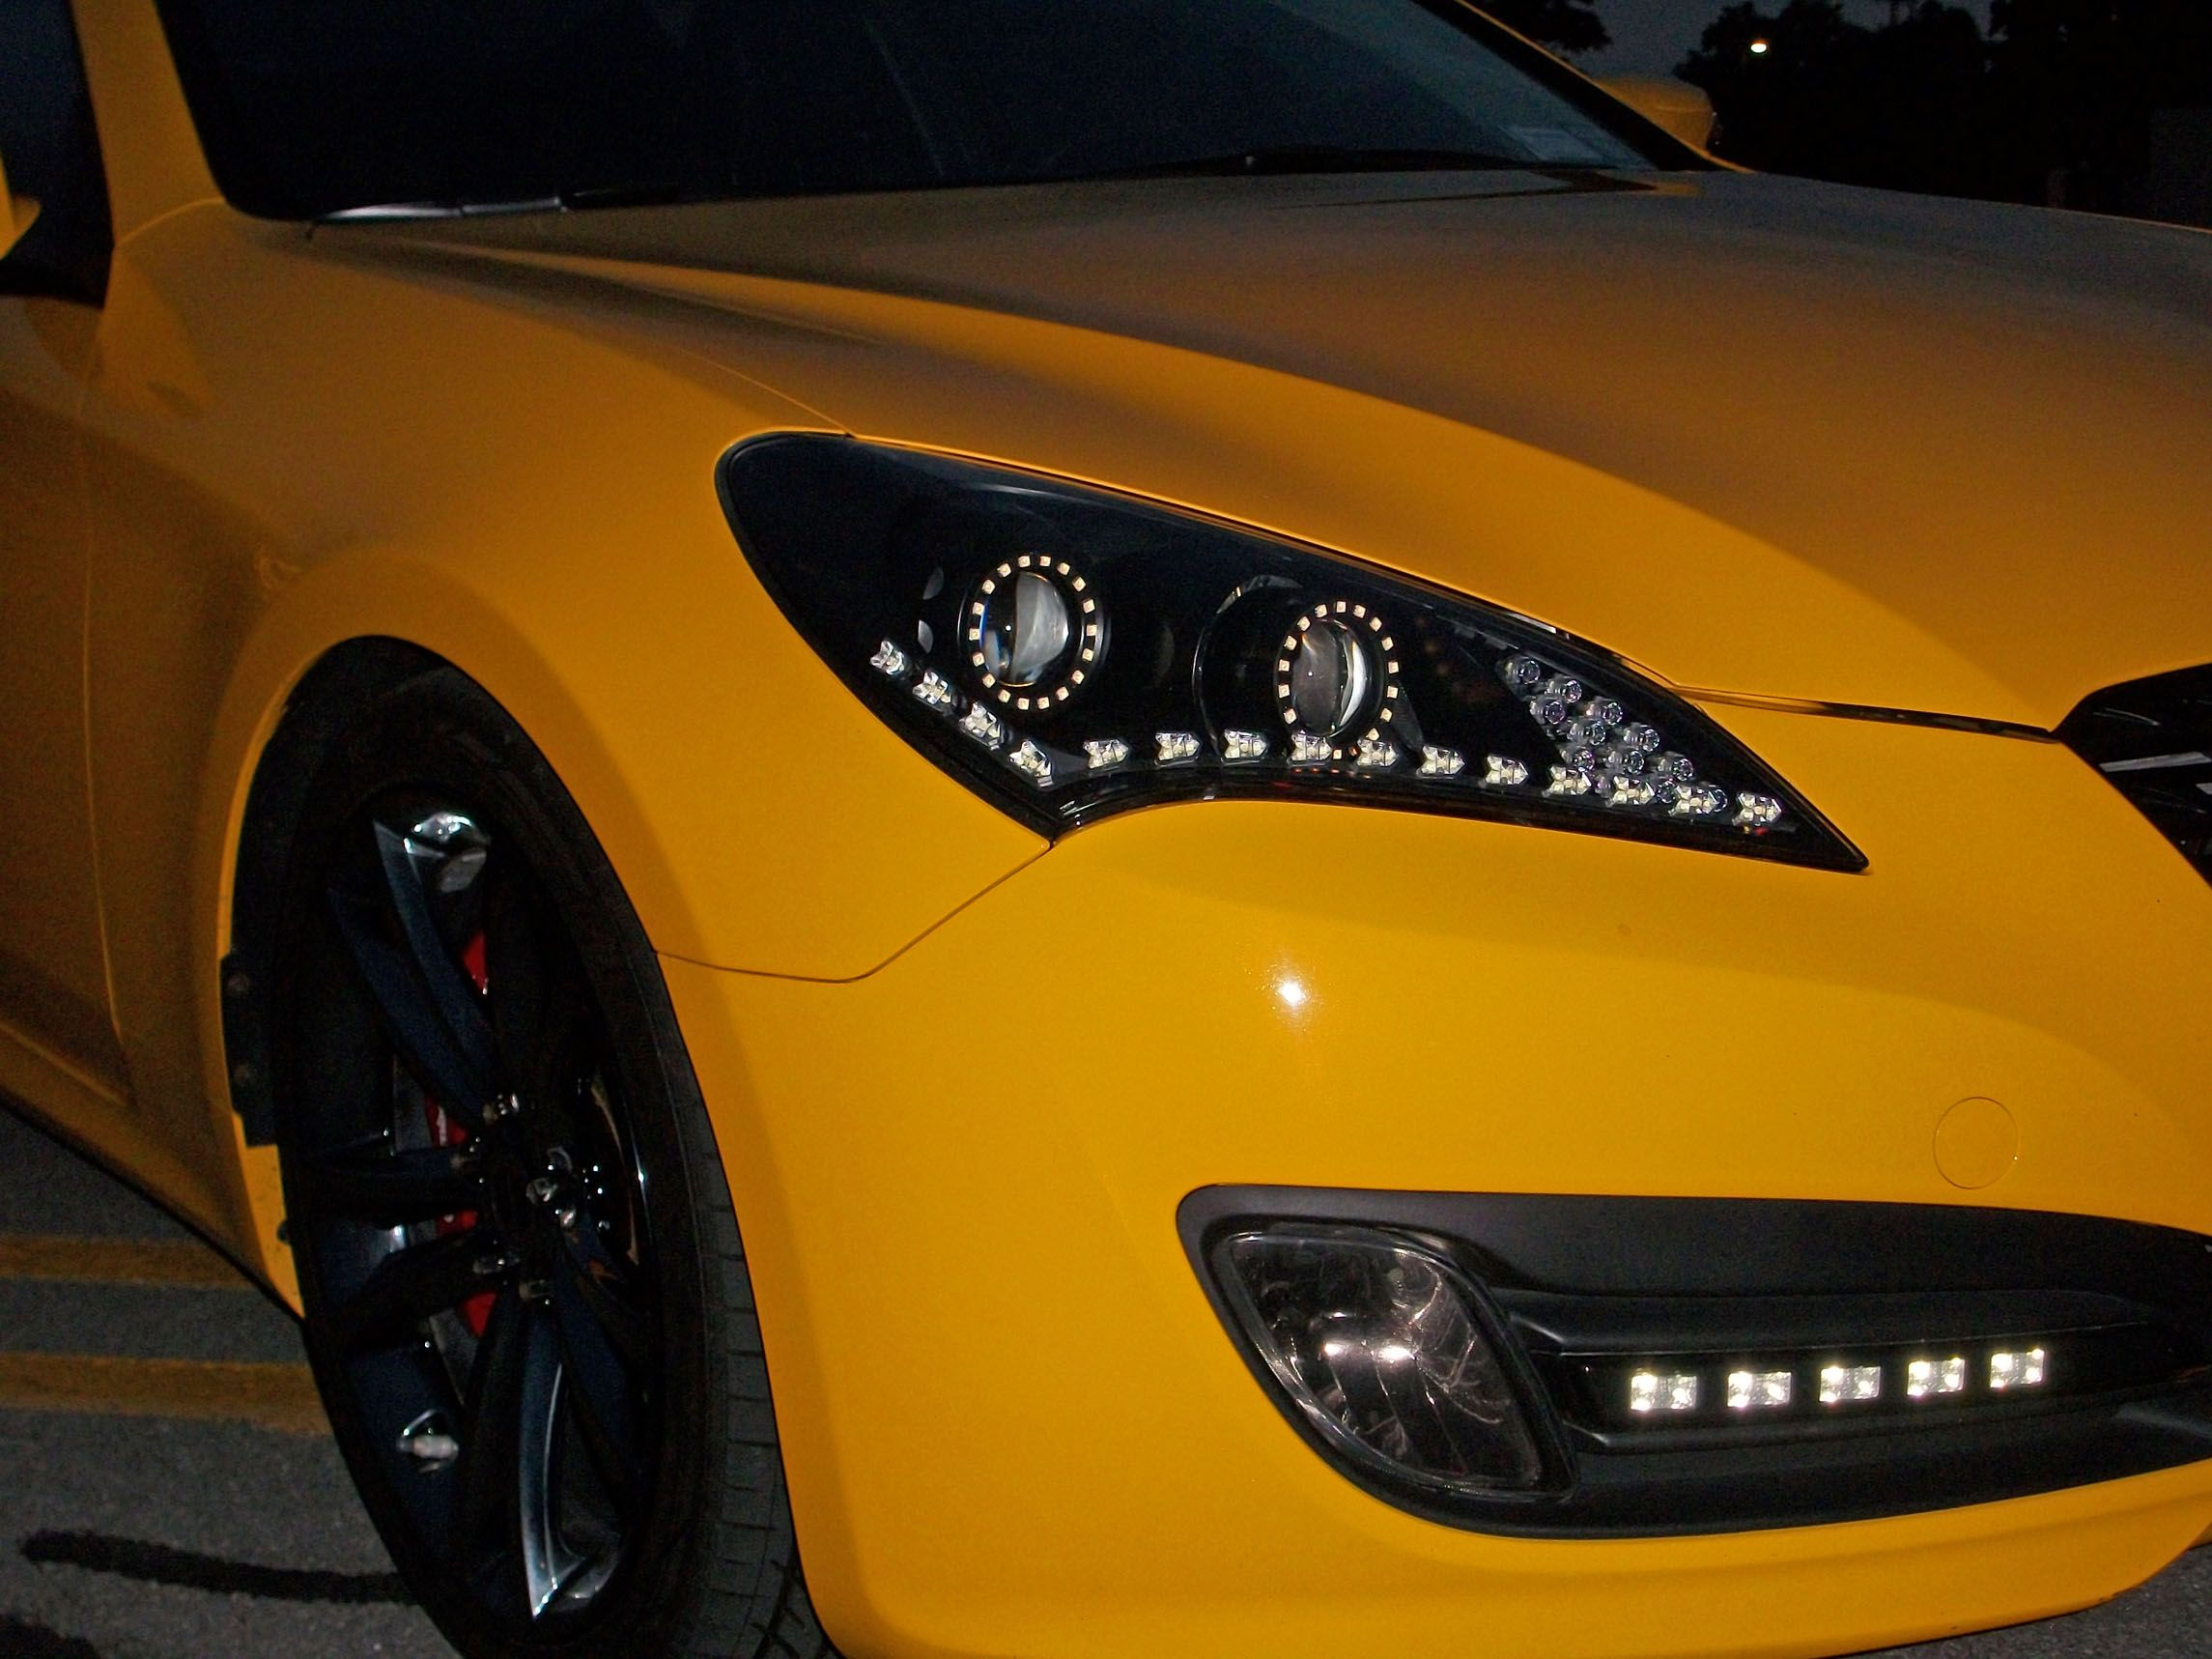 Dennis' Genesis Coupe Dual Projector LED Headlights by FlyRyde.